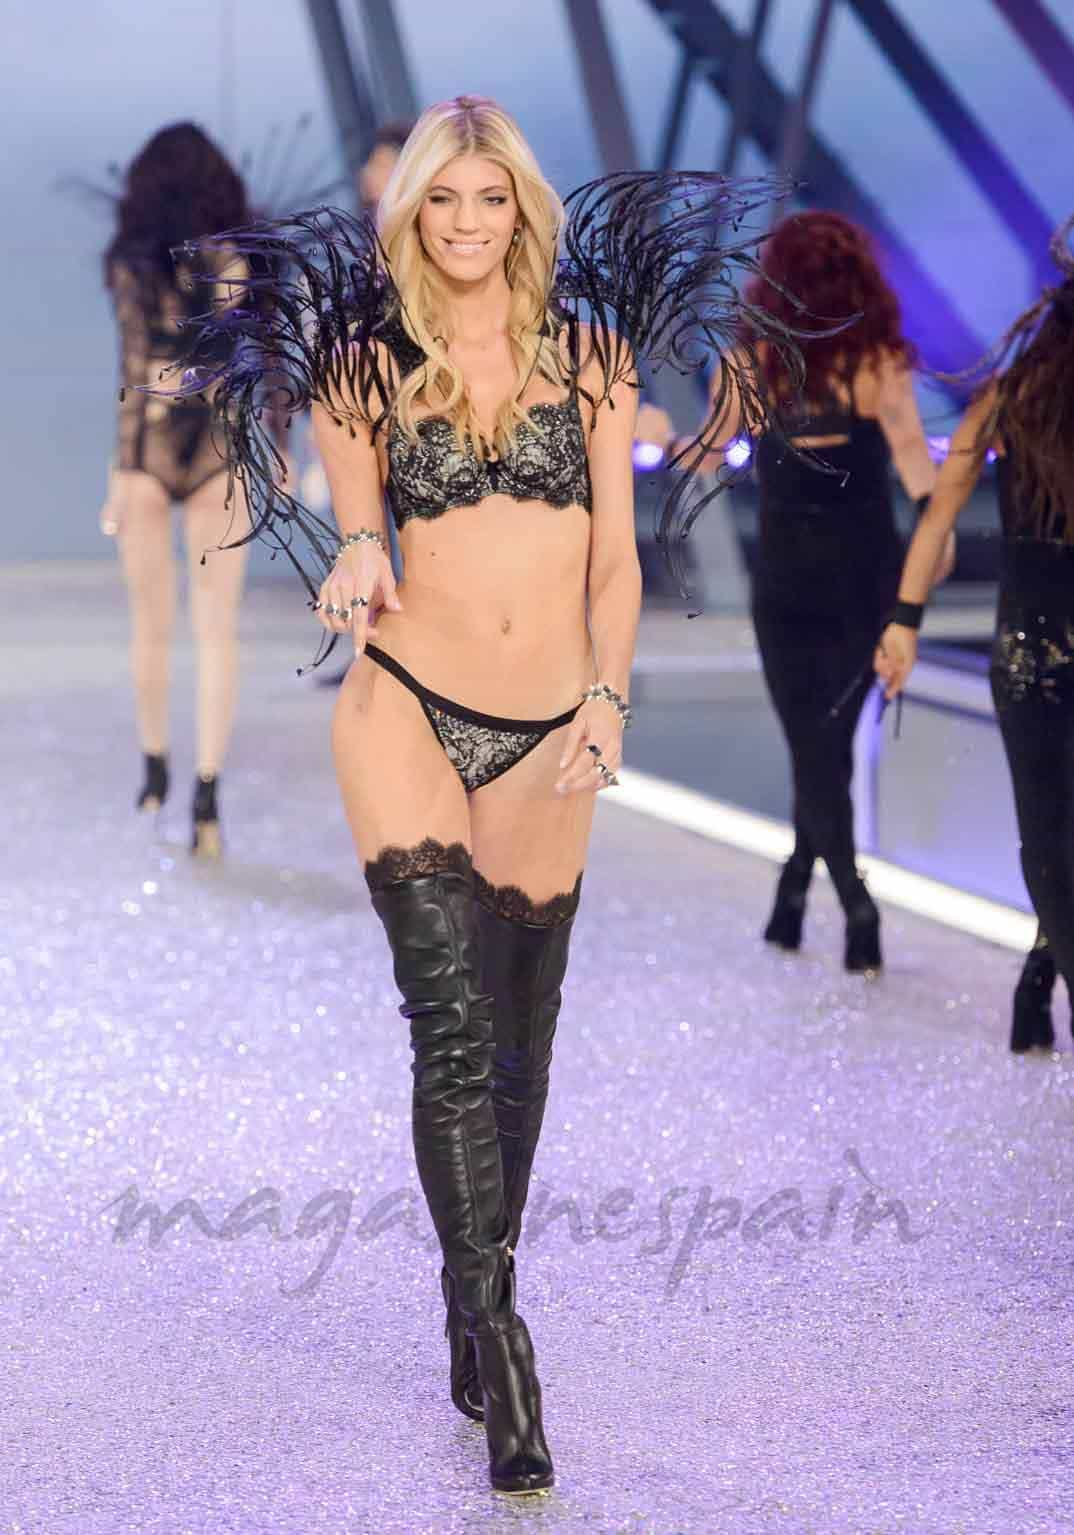 devon windsor en paris angel de victorias secret